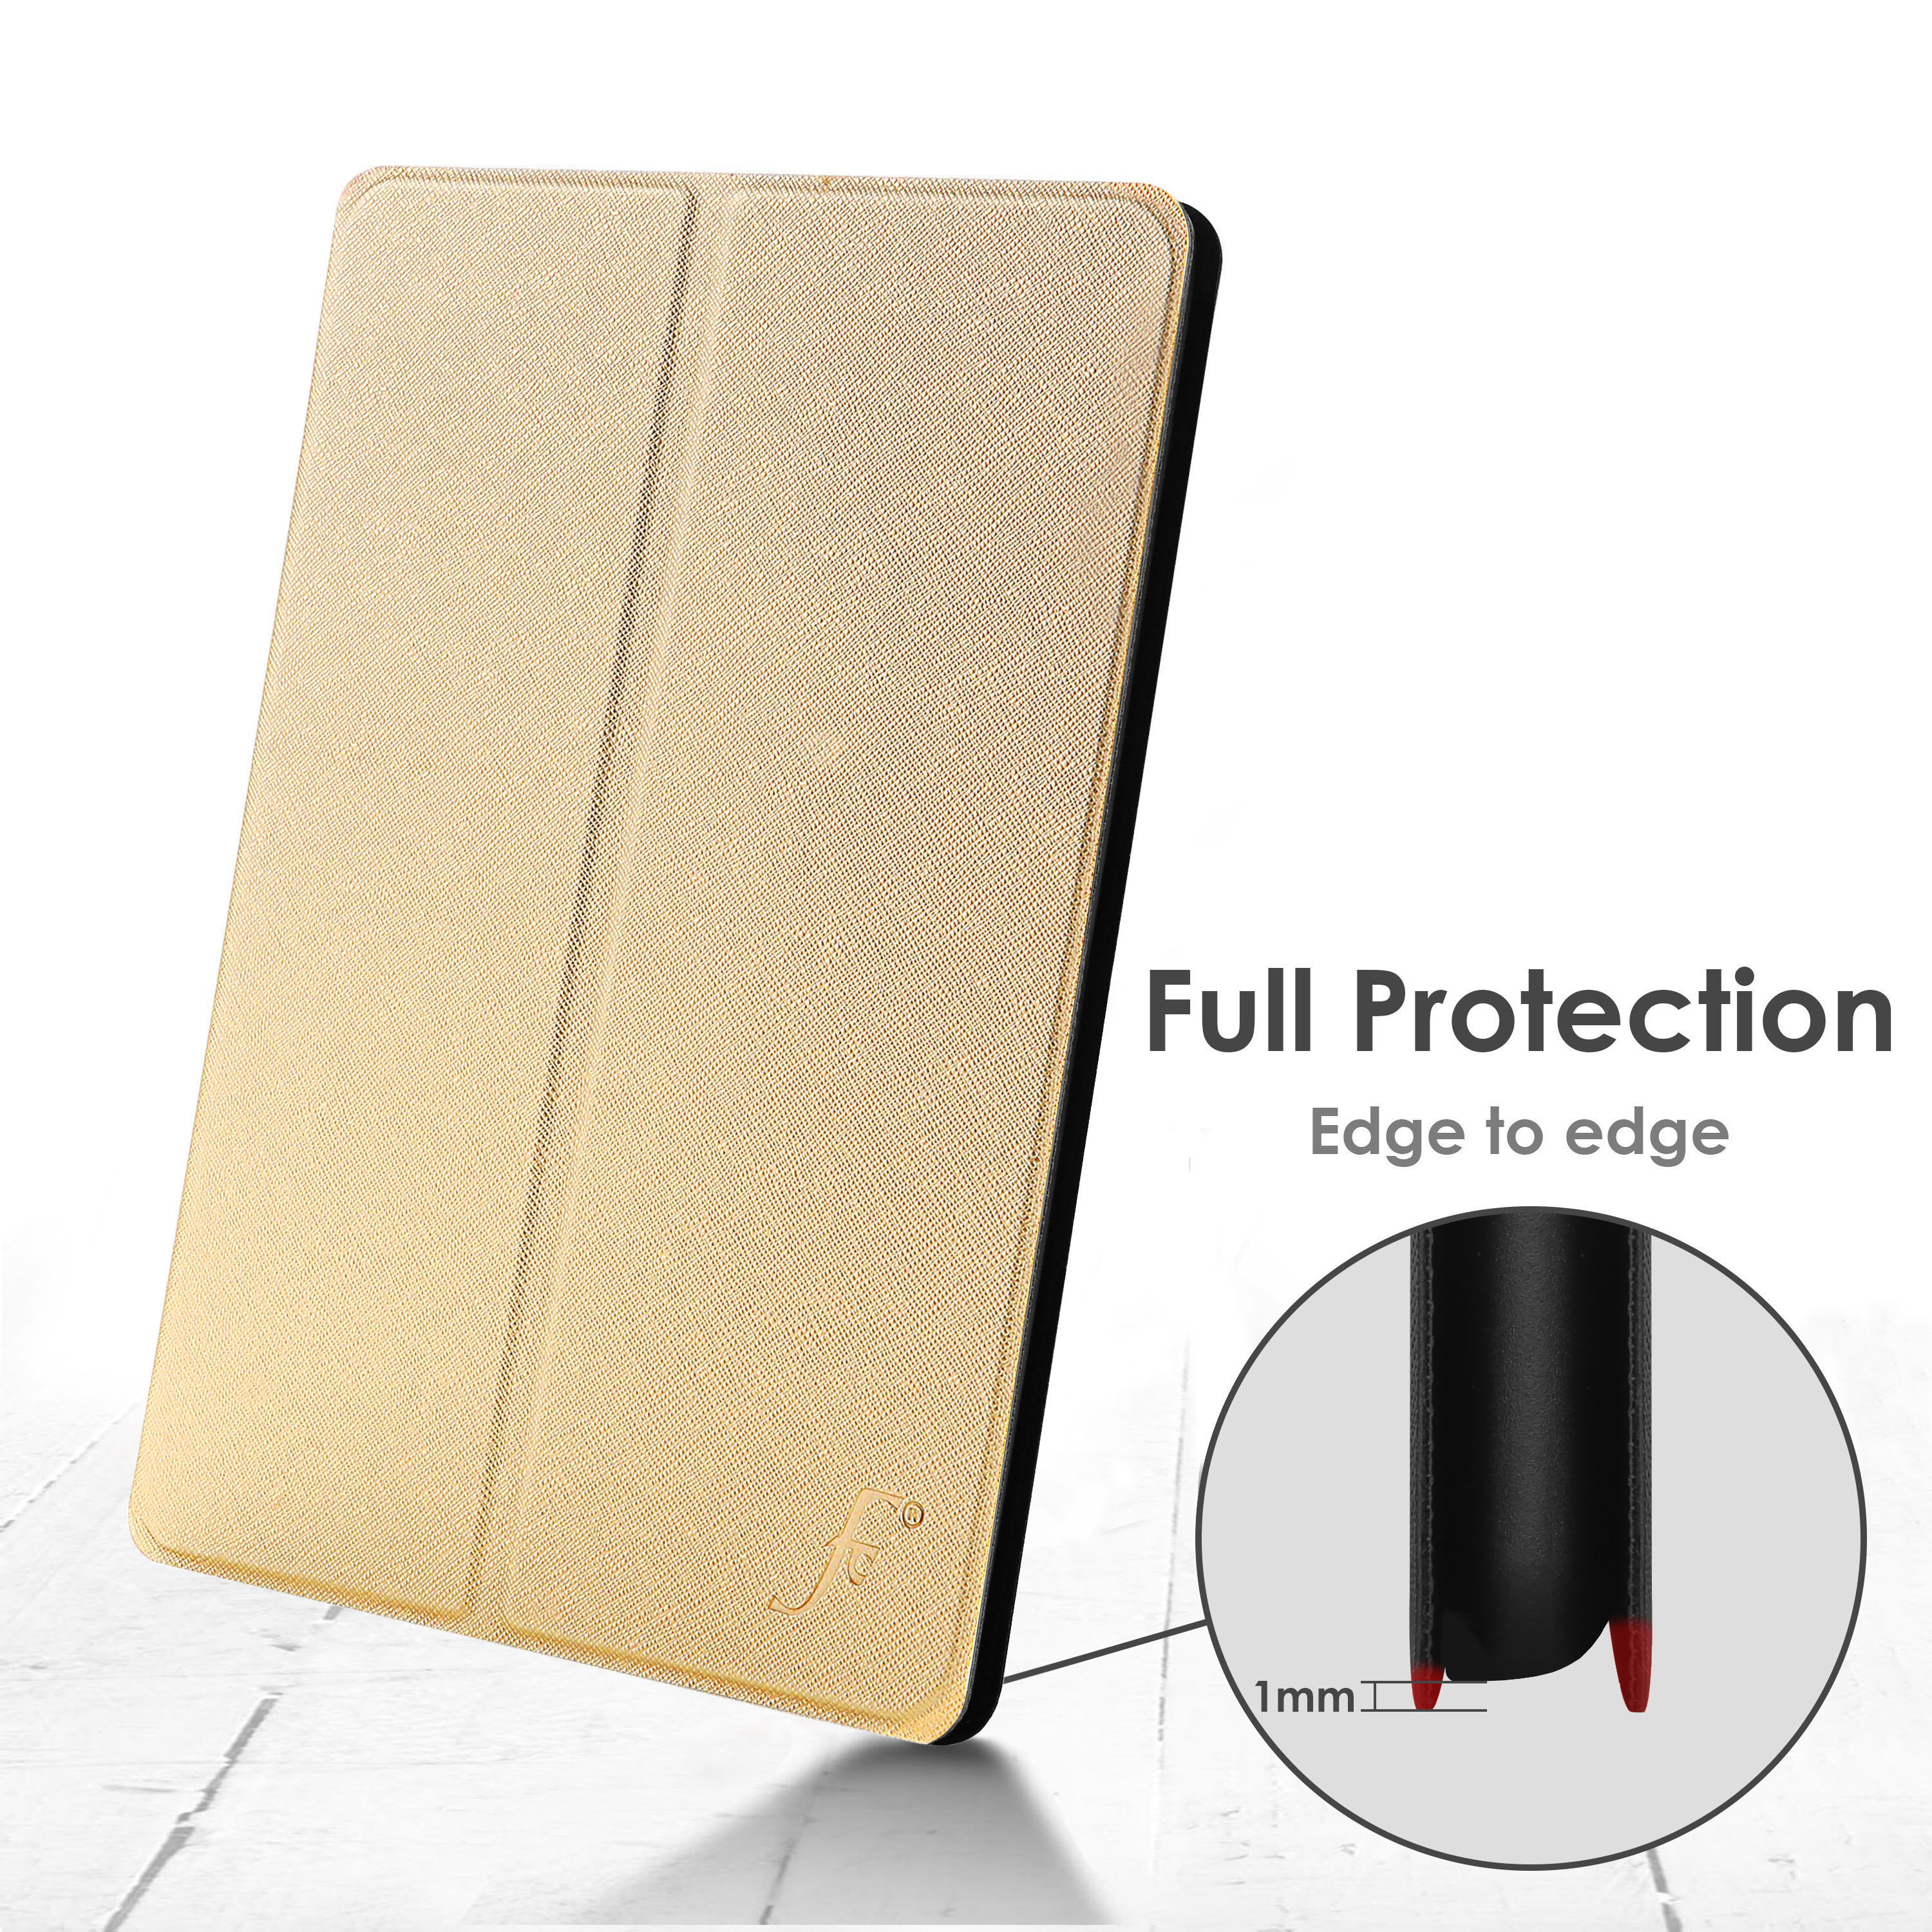 miniature 22 - Samsung Galaxy Tab A 10.1 2019 Étui Magnétique Protection & Support + Stylet